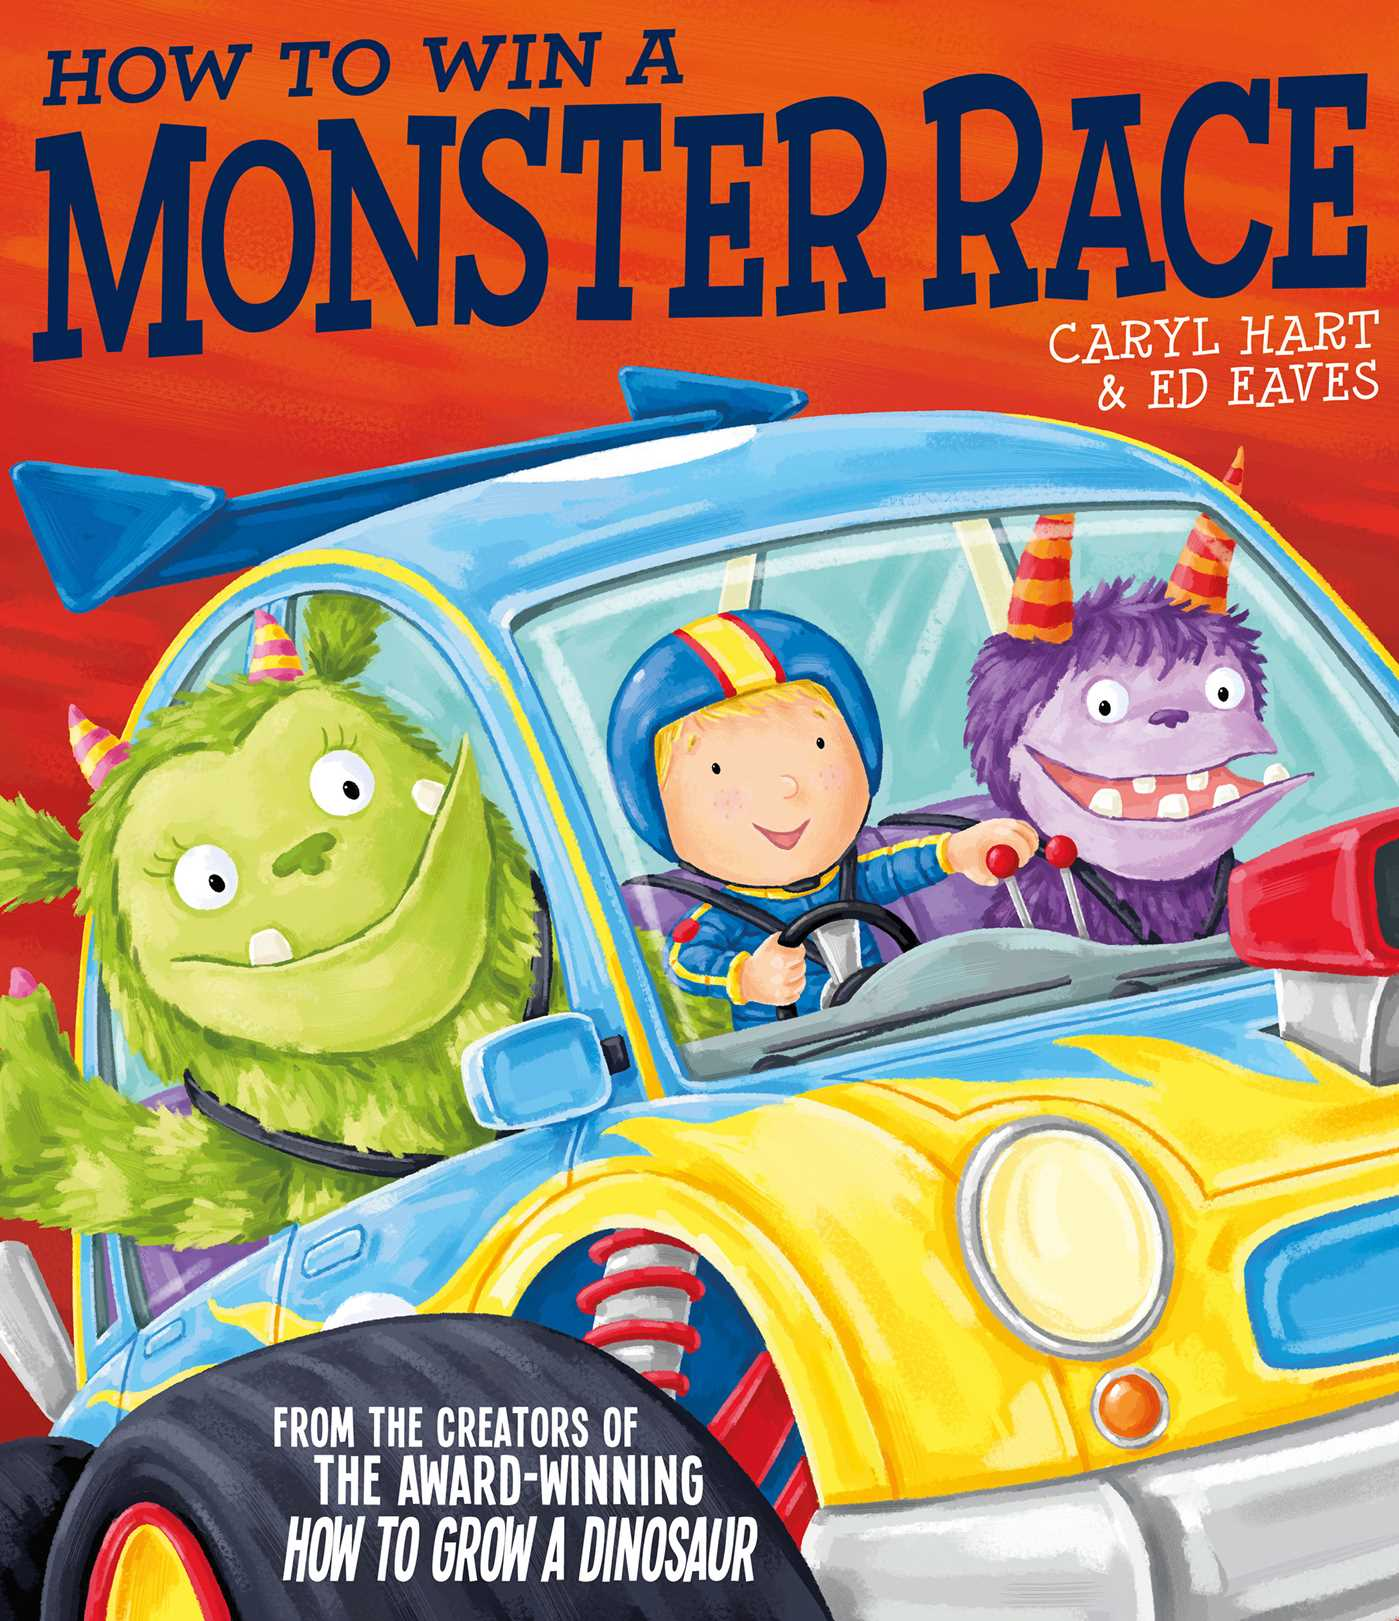 How to win a monster race 9780857079619 hr